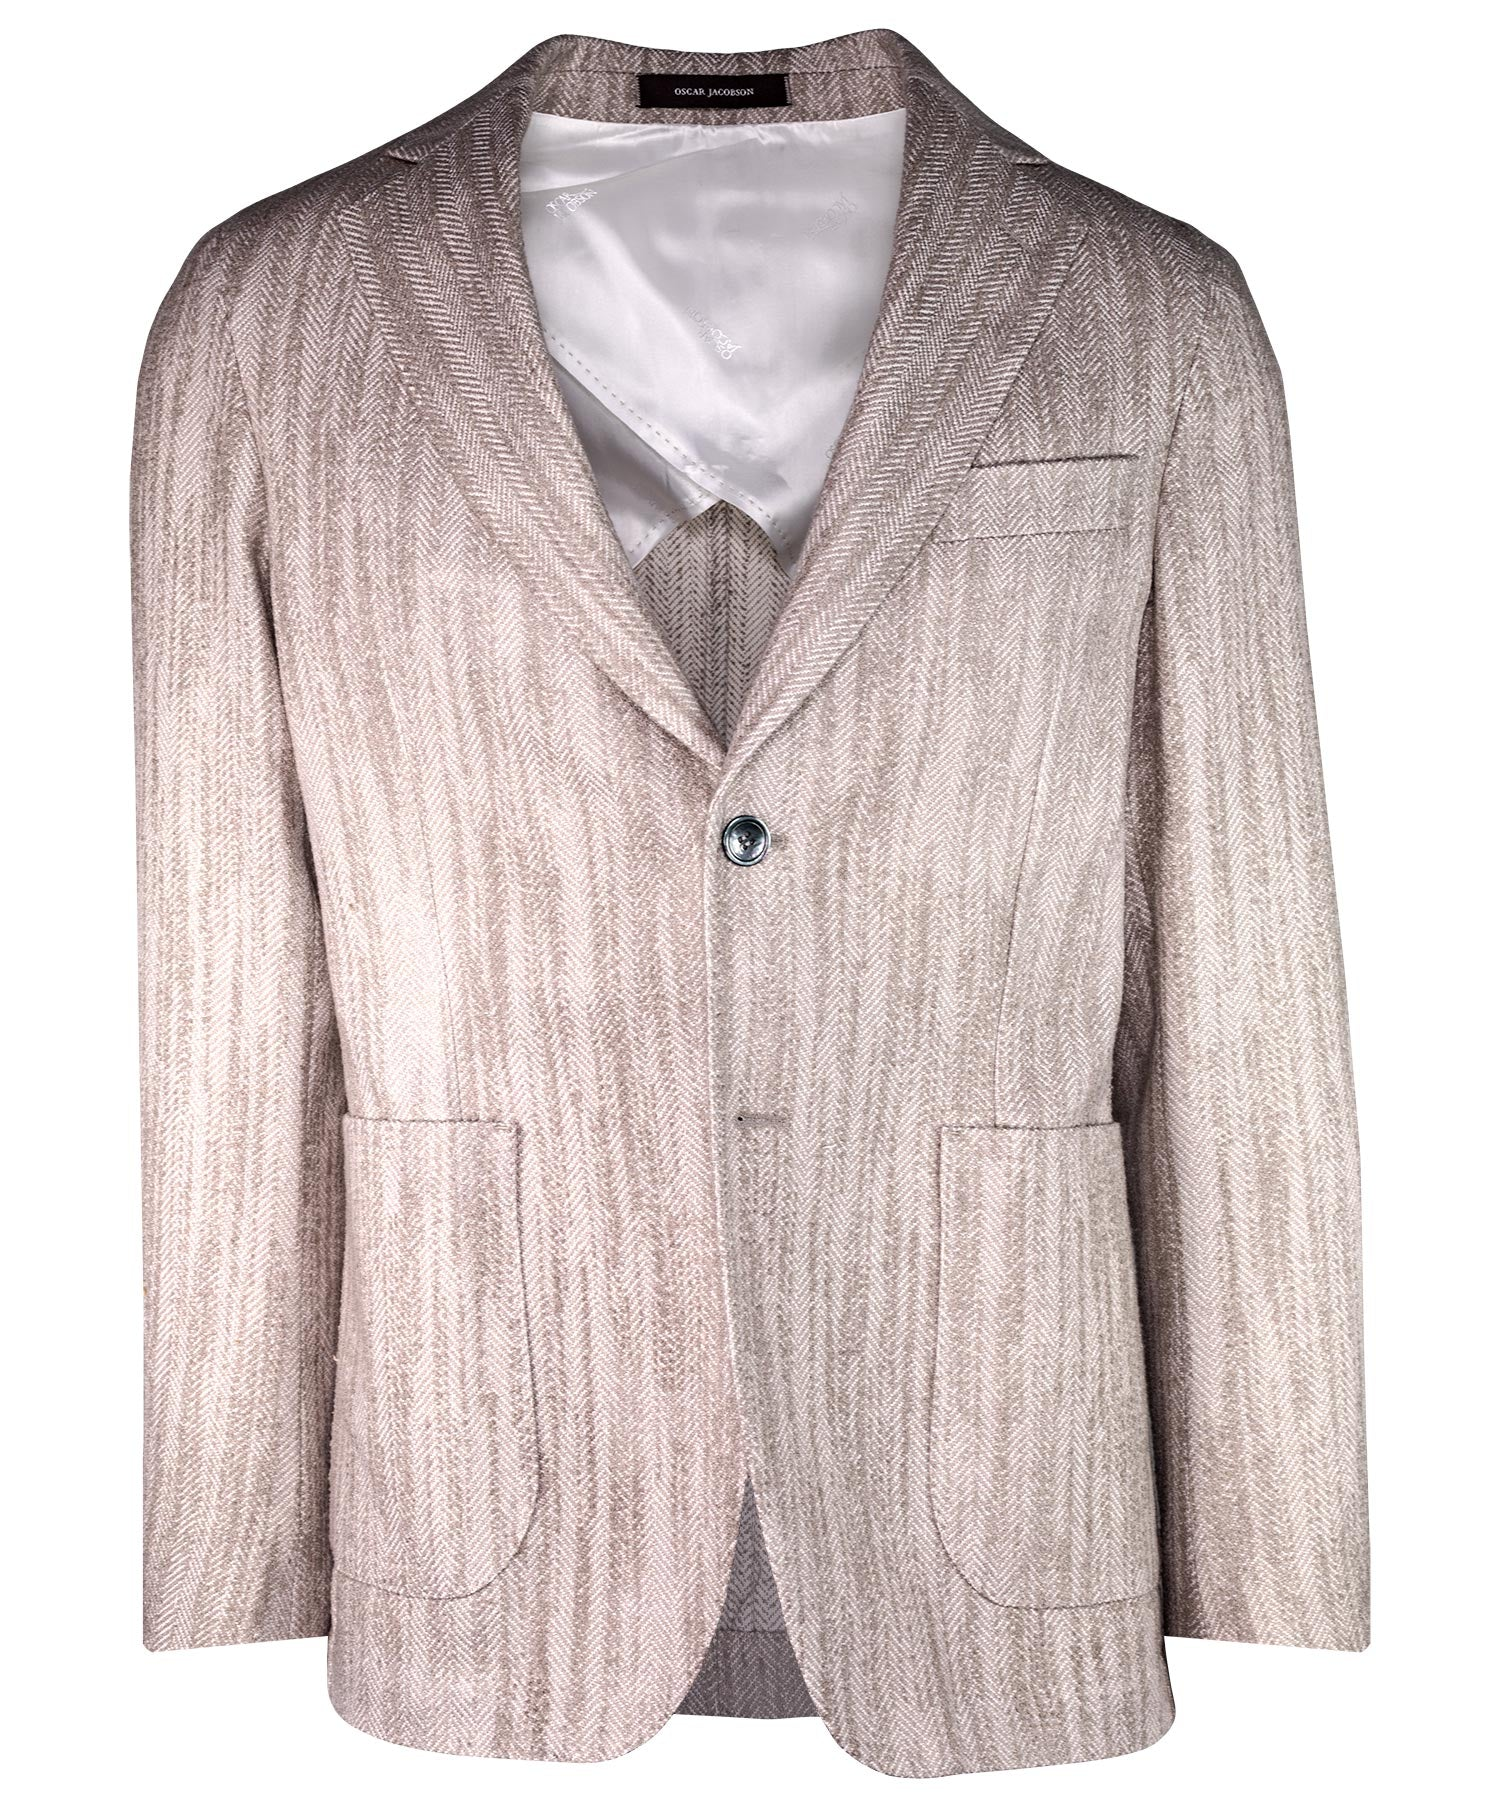 Edgar Earthy Stone Large Herringbone Jacket